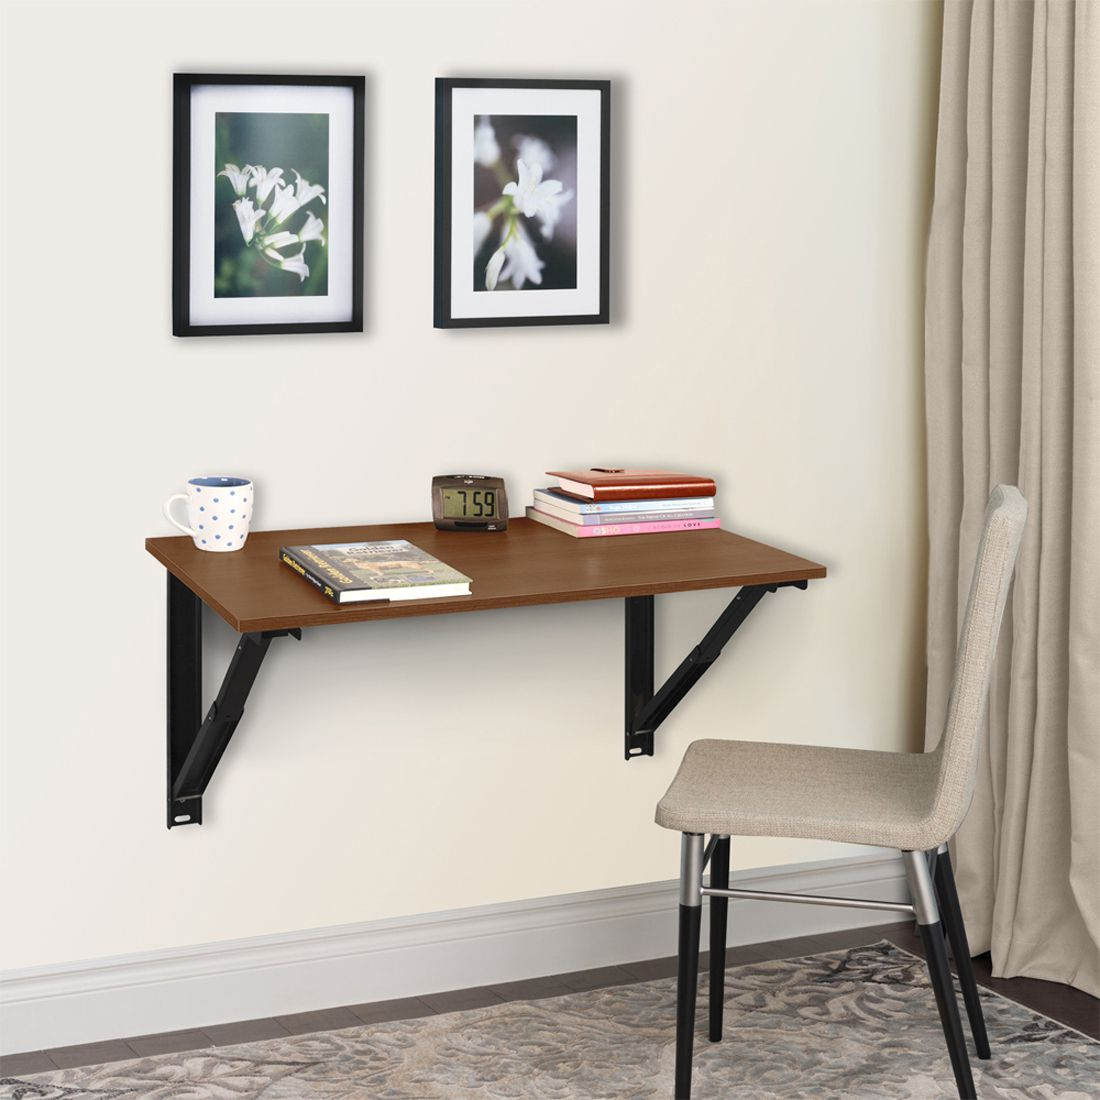 32 inches Wizard Folding Study Table/Laptop table Acacia Dark  by Delite kom